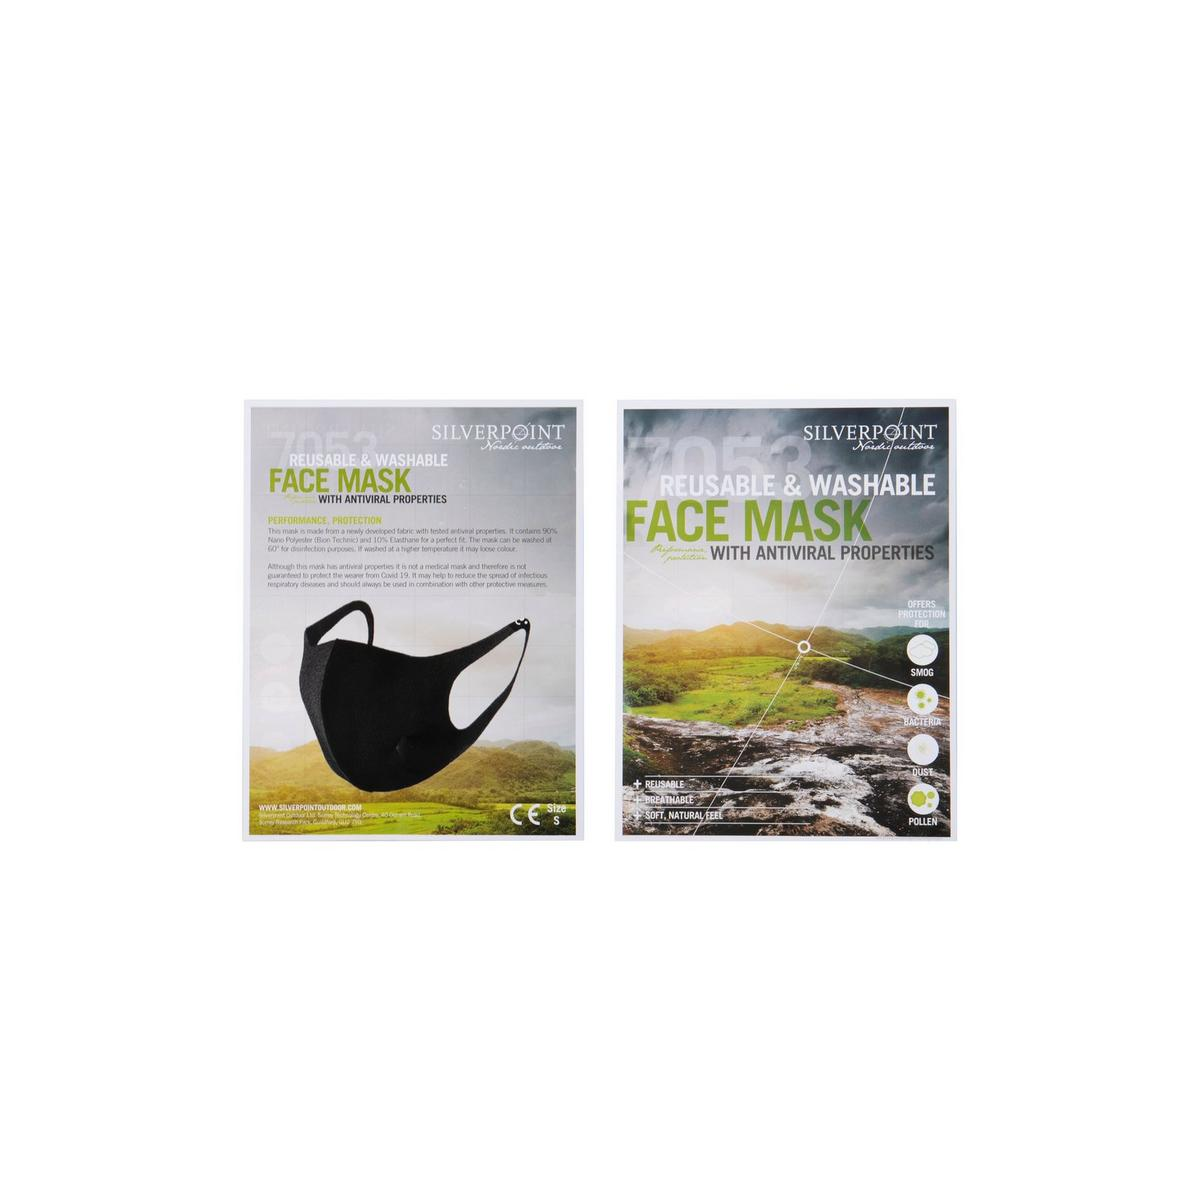 Silverpoint Unisex Silverpoint Antiviral Face Mask - Black